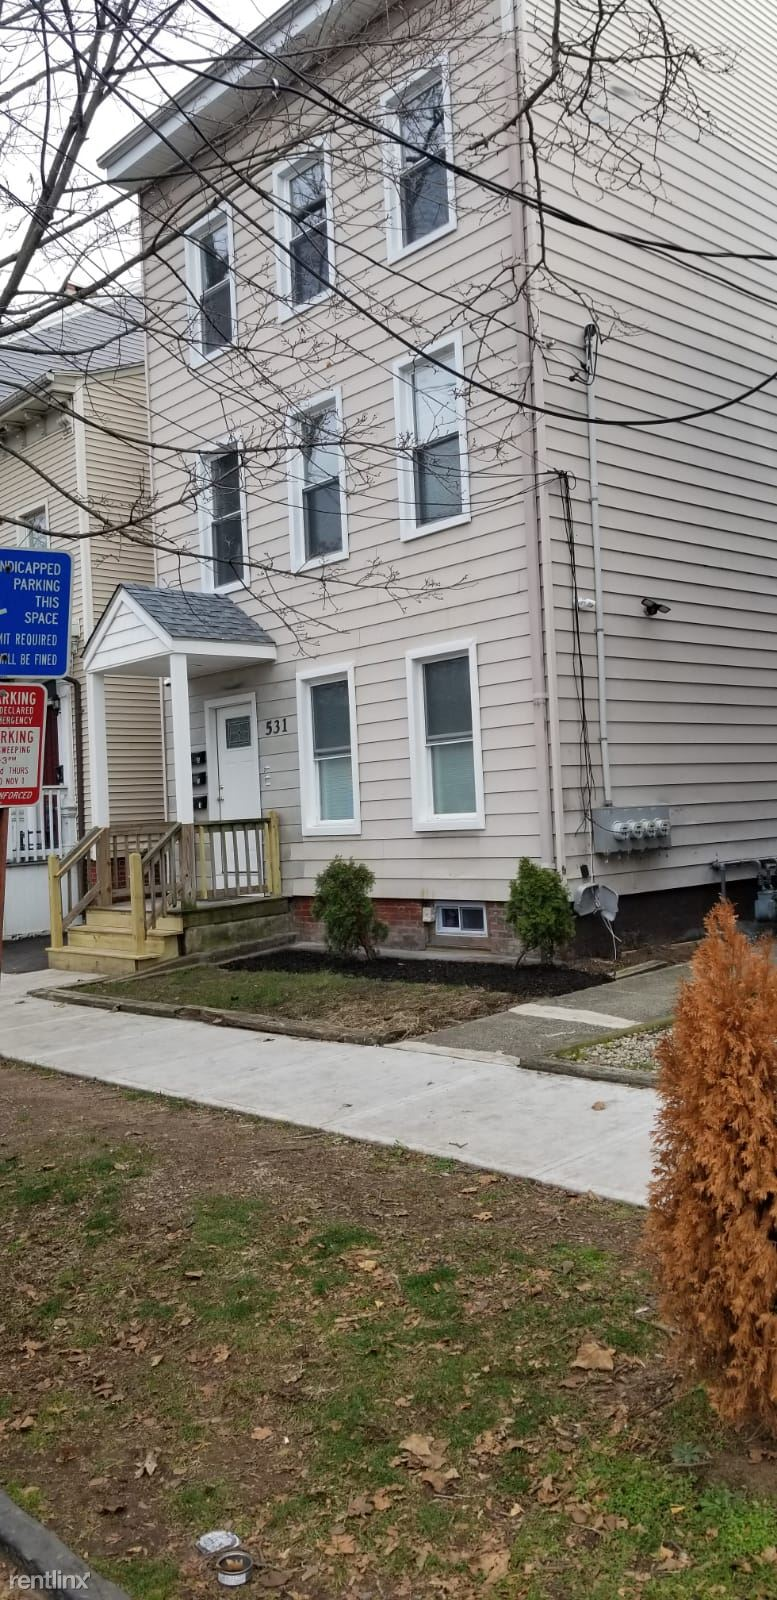 531 East St - 2400USD / month